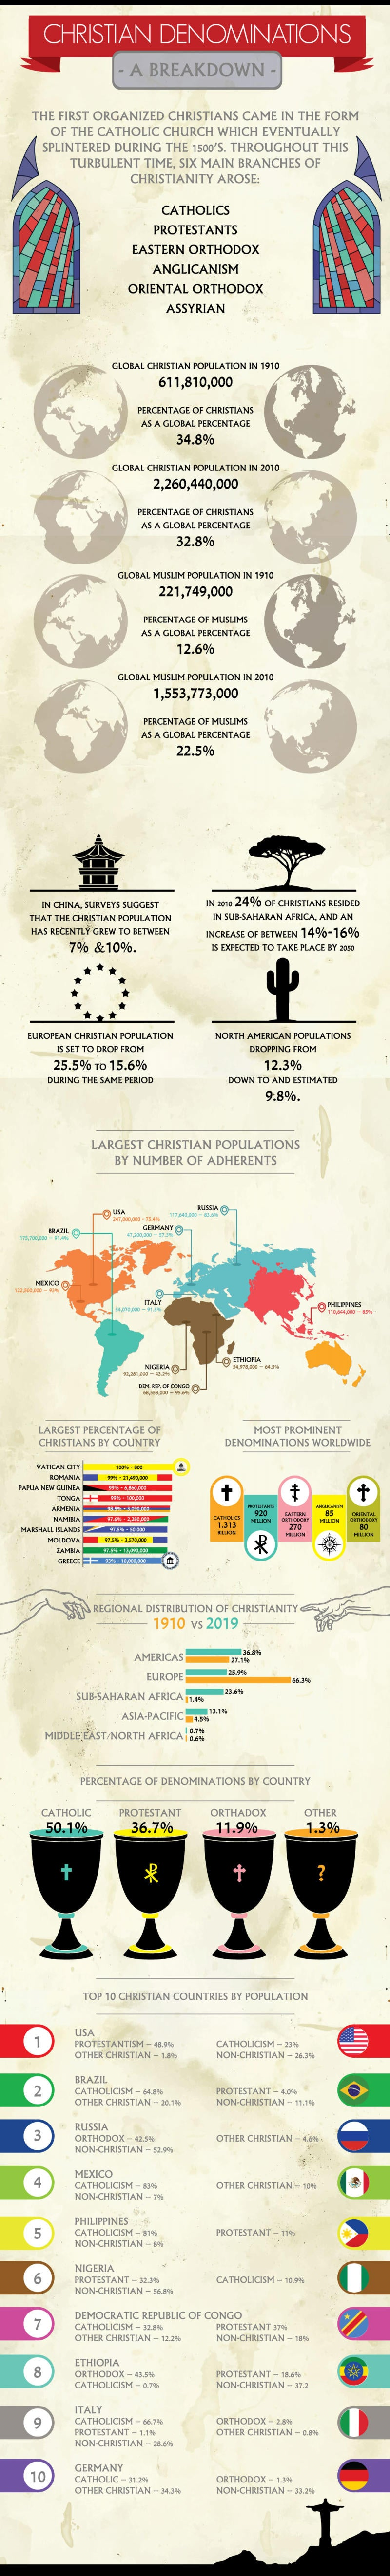 Christian Denominations Infographic